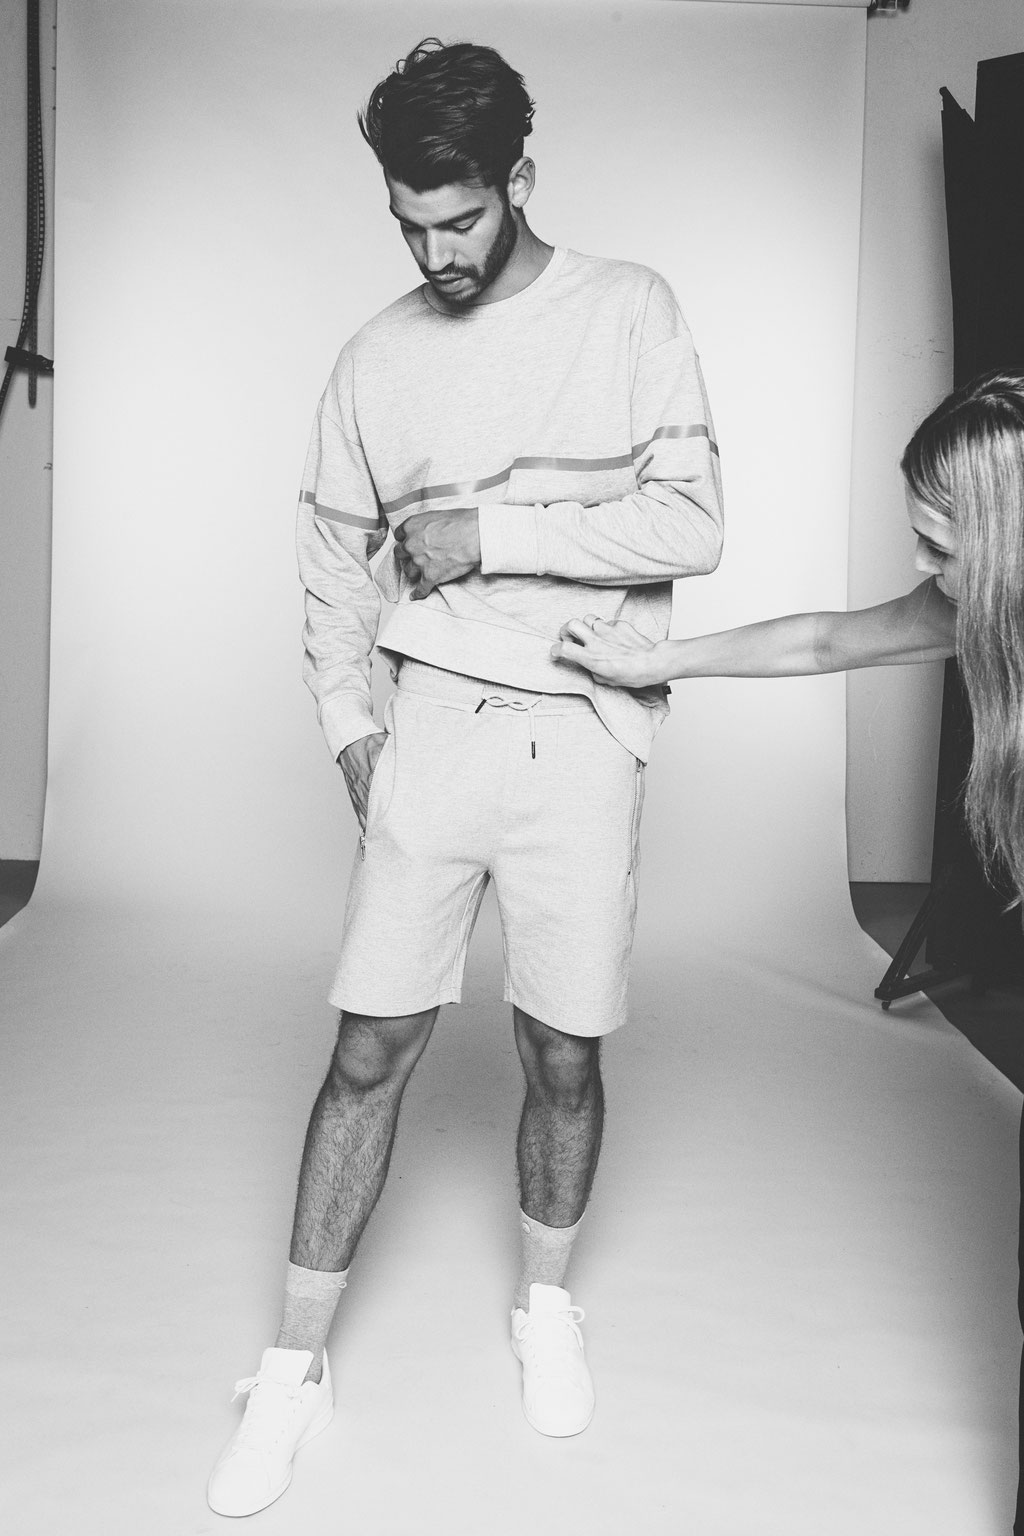 Backstage at Son of a Brand production photoshoot - Photography by Landa Penders